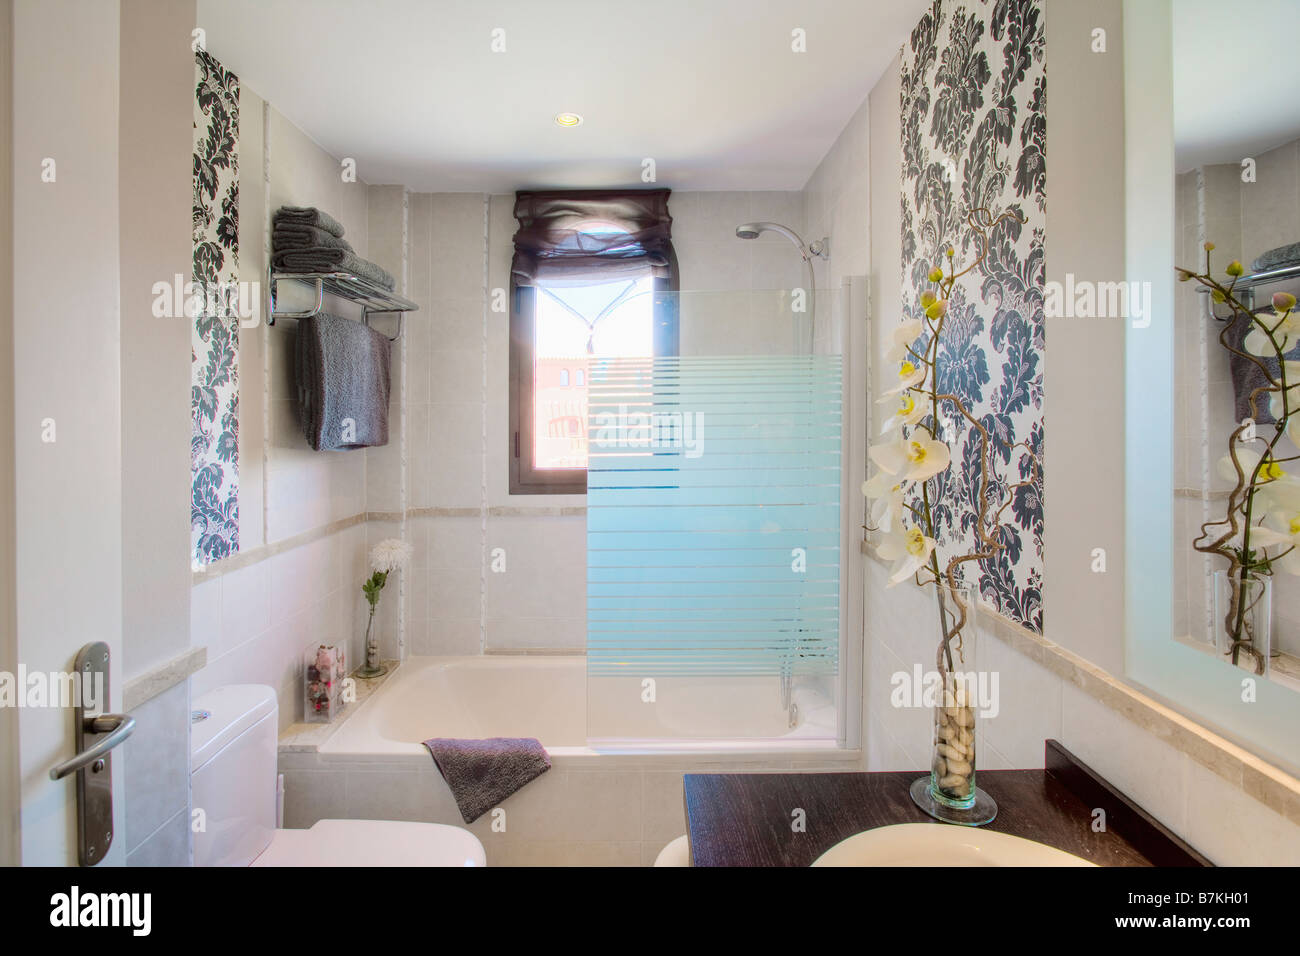 small modern bathroom with opaque glass shower screen on bath and small modern bathroom with opaque glass shower screen on bath and large leaf print wallpaper on two walls